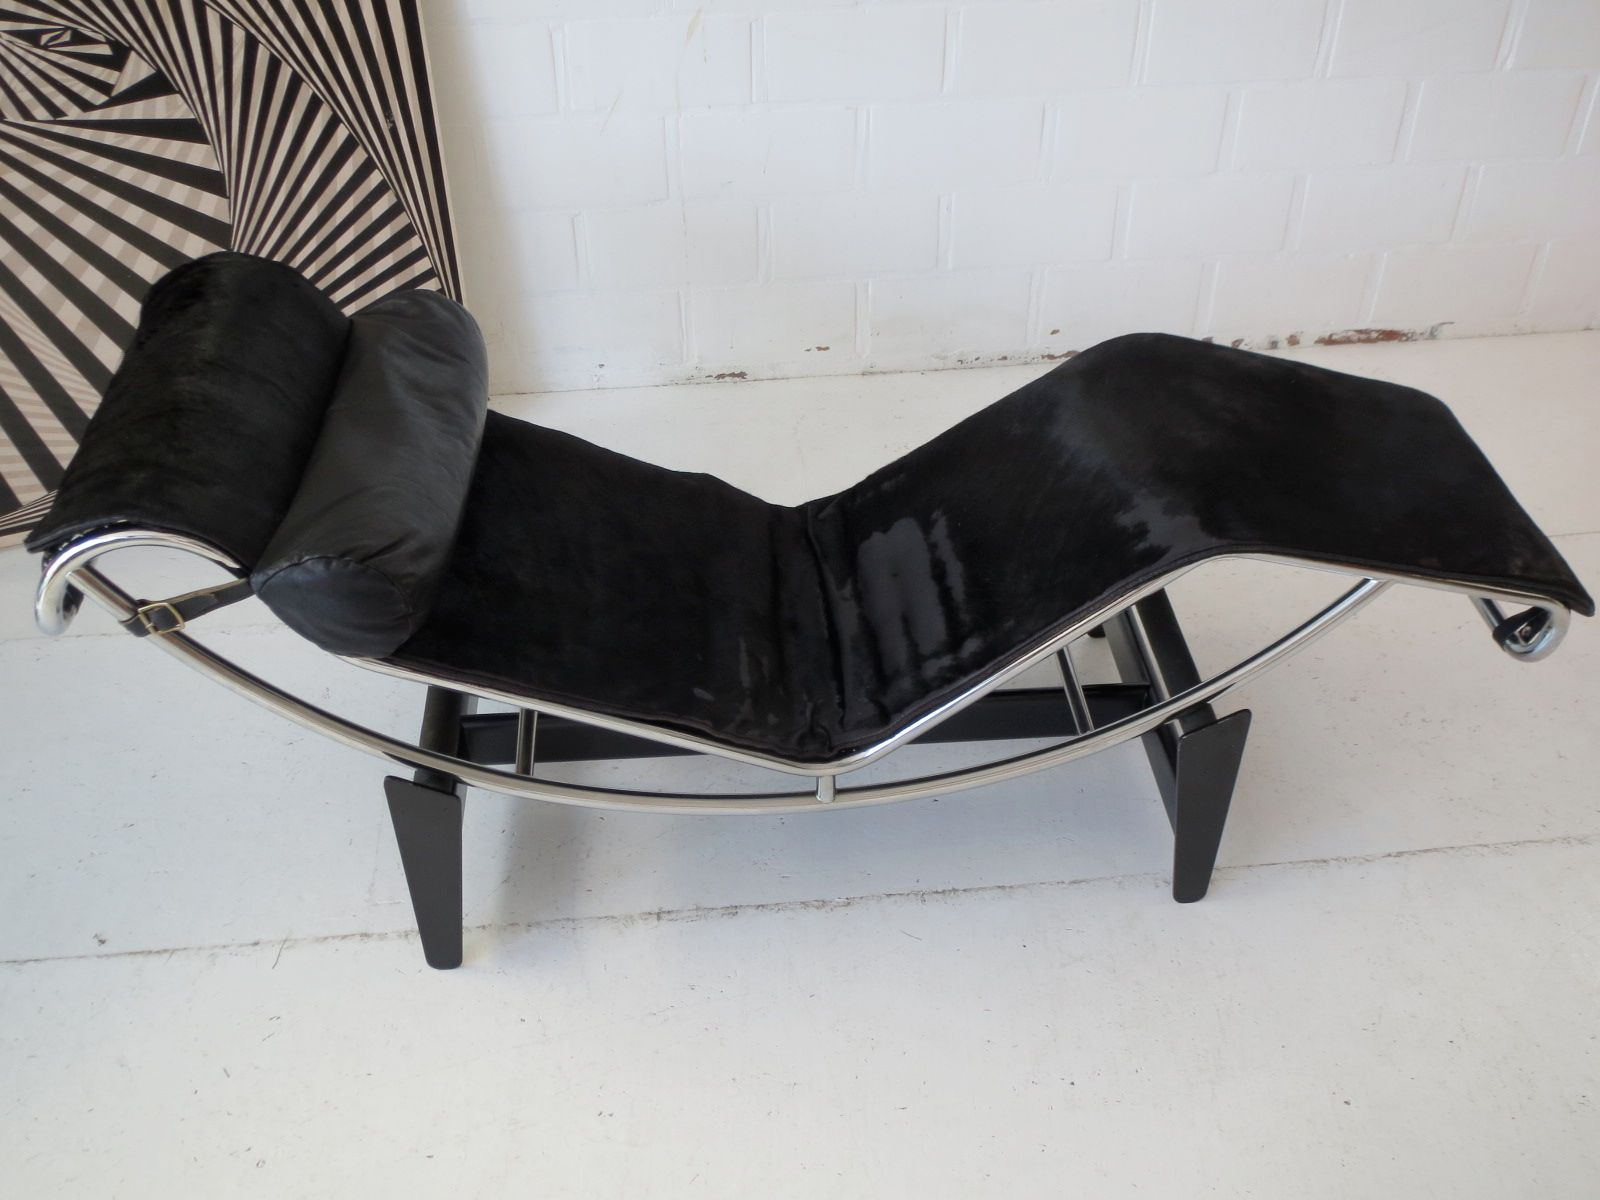 Early under 750 numbered lc4 chaise longue by le - Chaise longue charlotte perriand ...